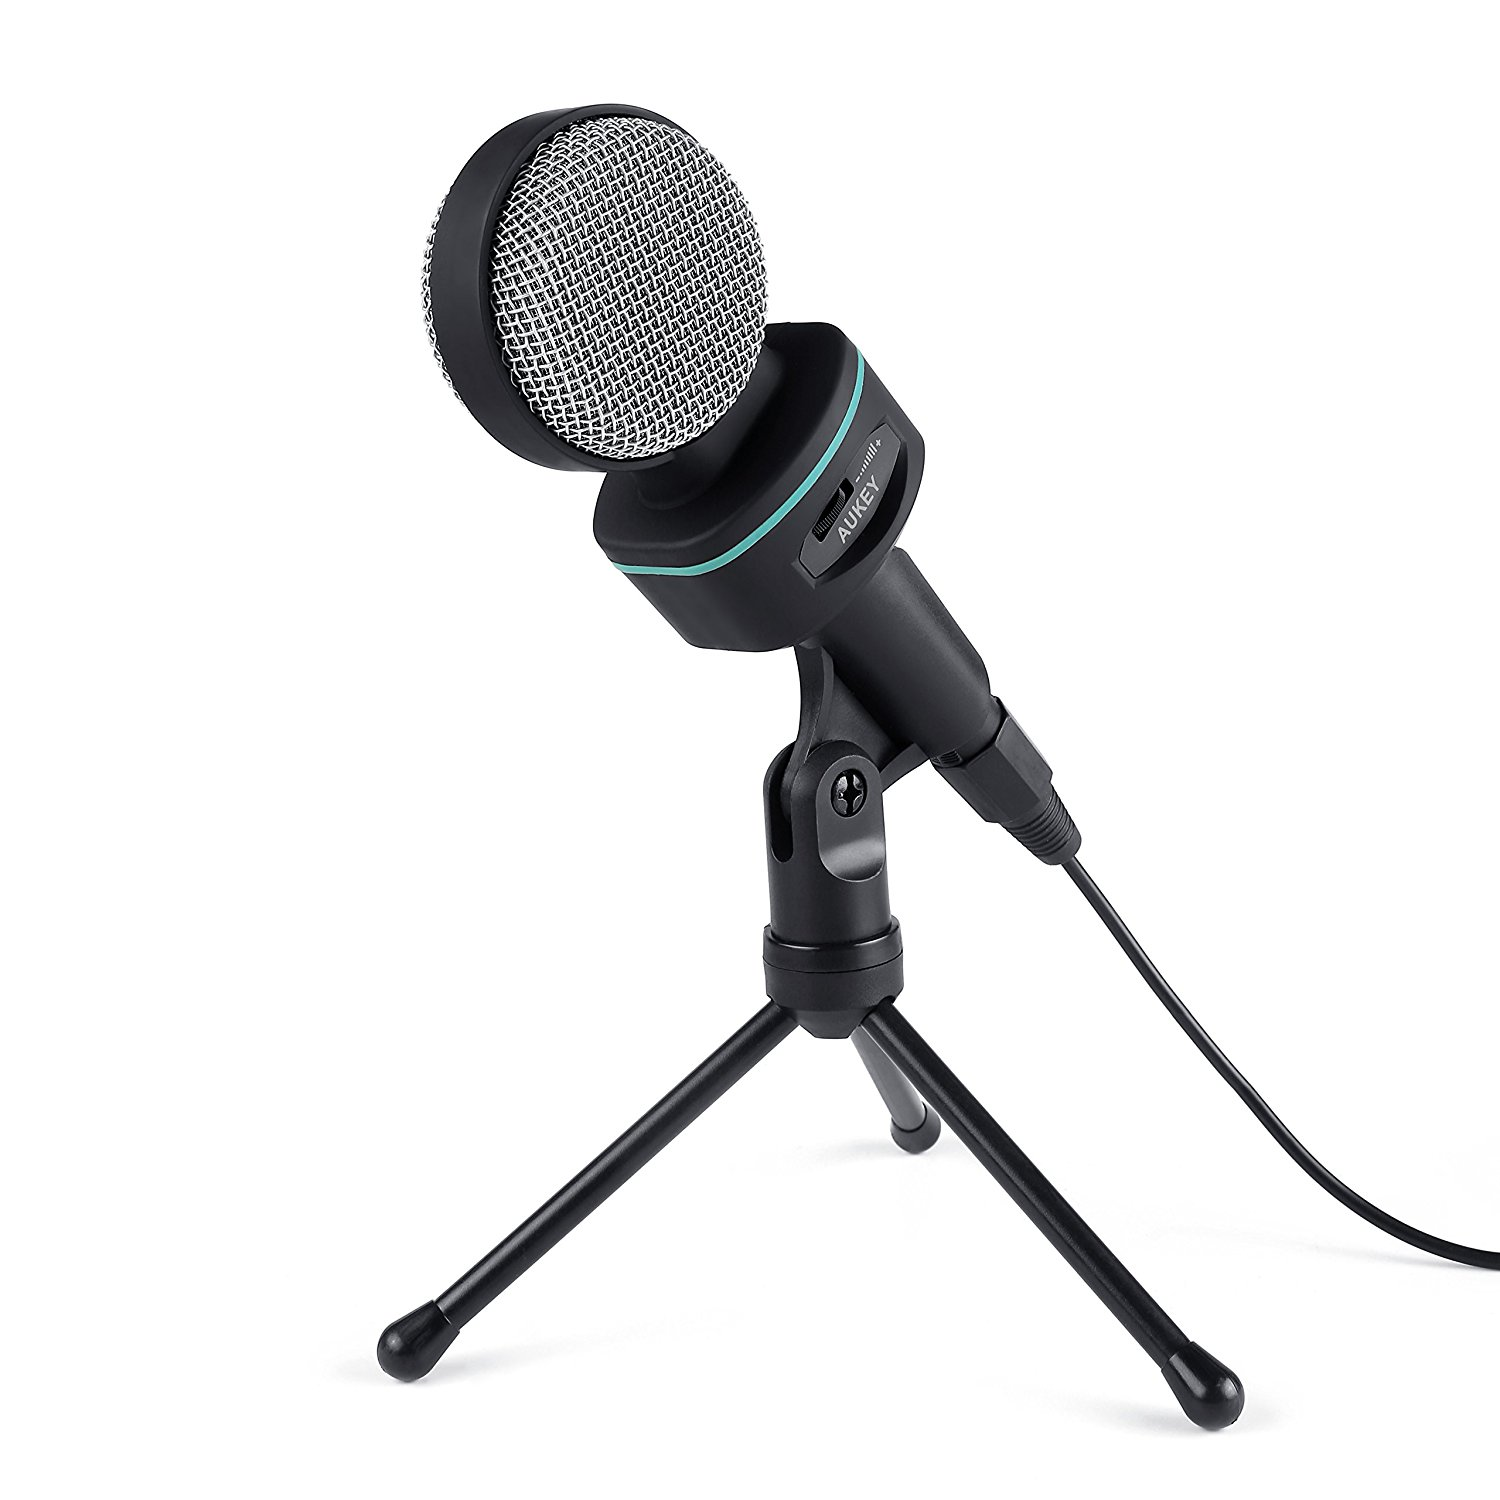 AUKEY Condenser Microphone, Bidirectional Condenser Mic with XLR Female to 3.5mm Male... by Generic